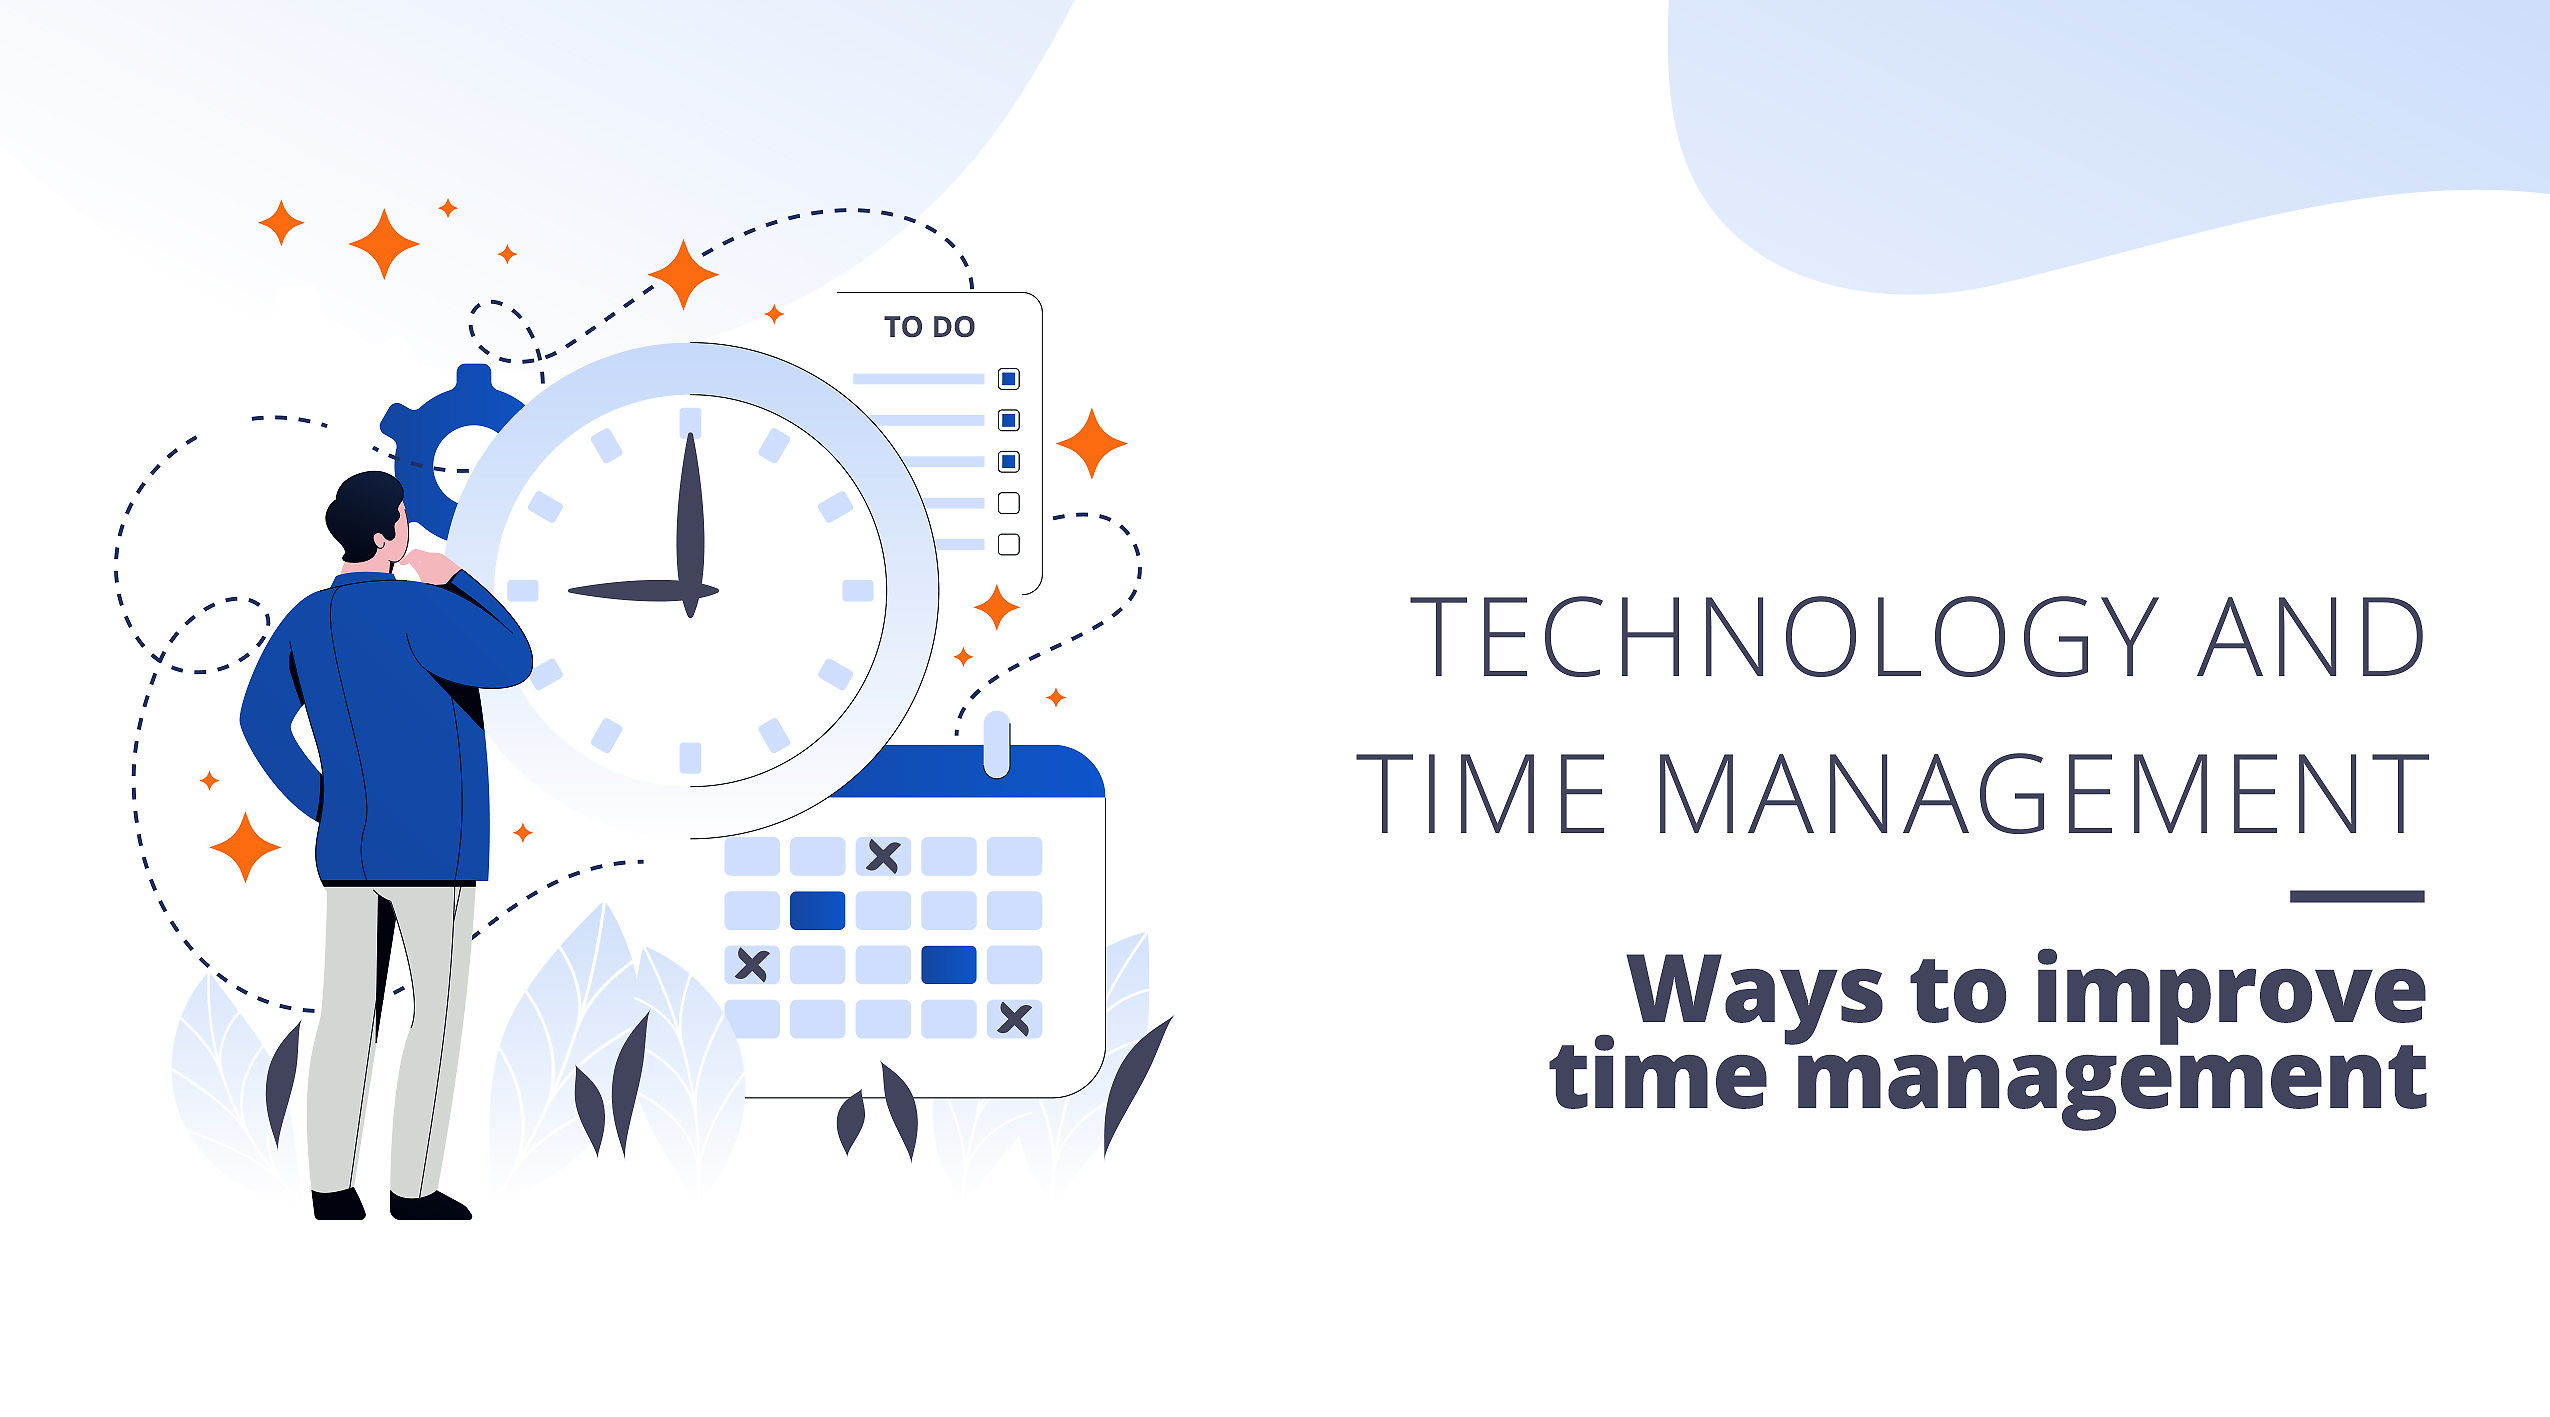 Technology and Time Management